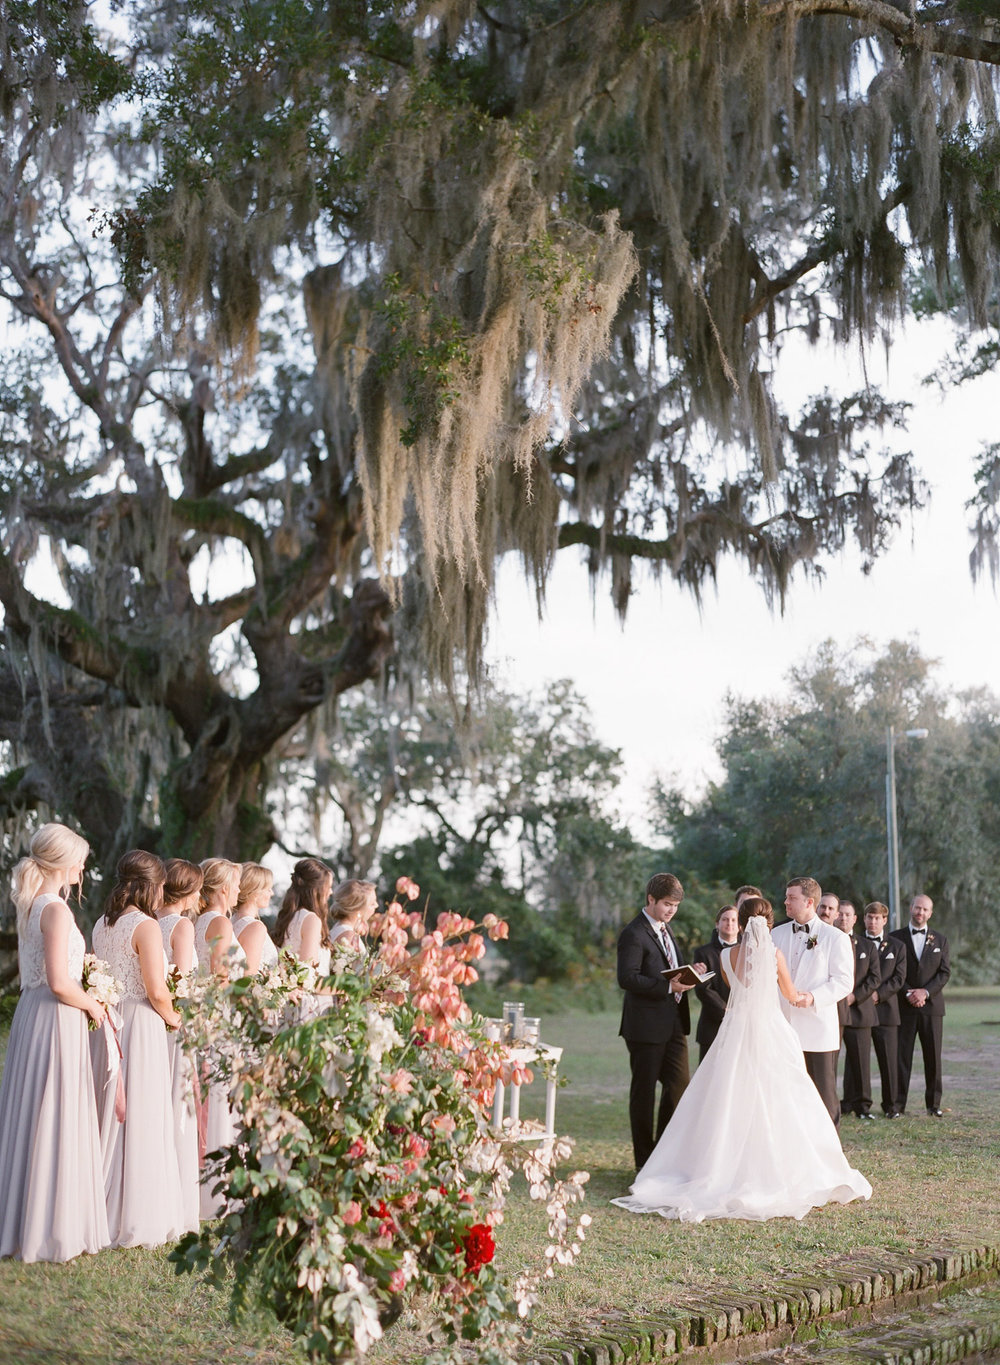 Charleston-Wedding-Photographer-85.jpg